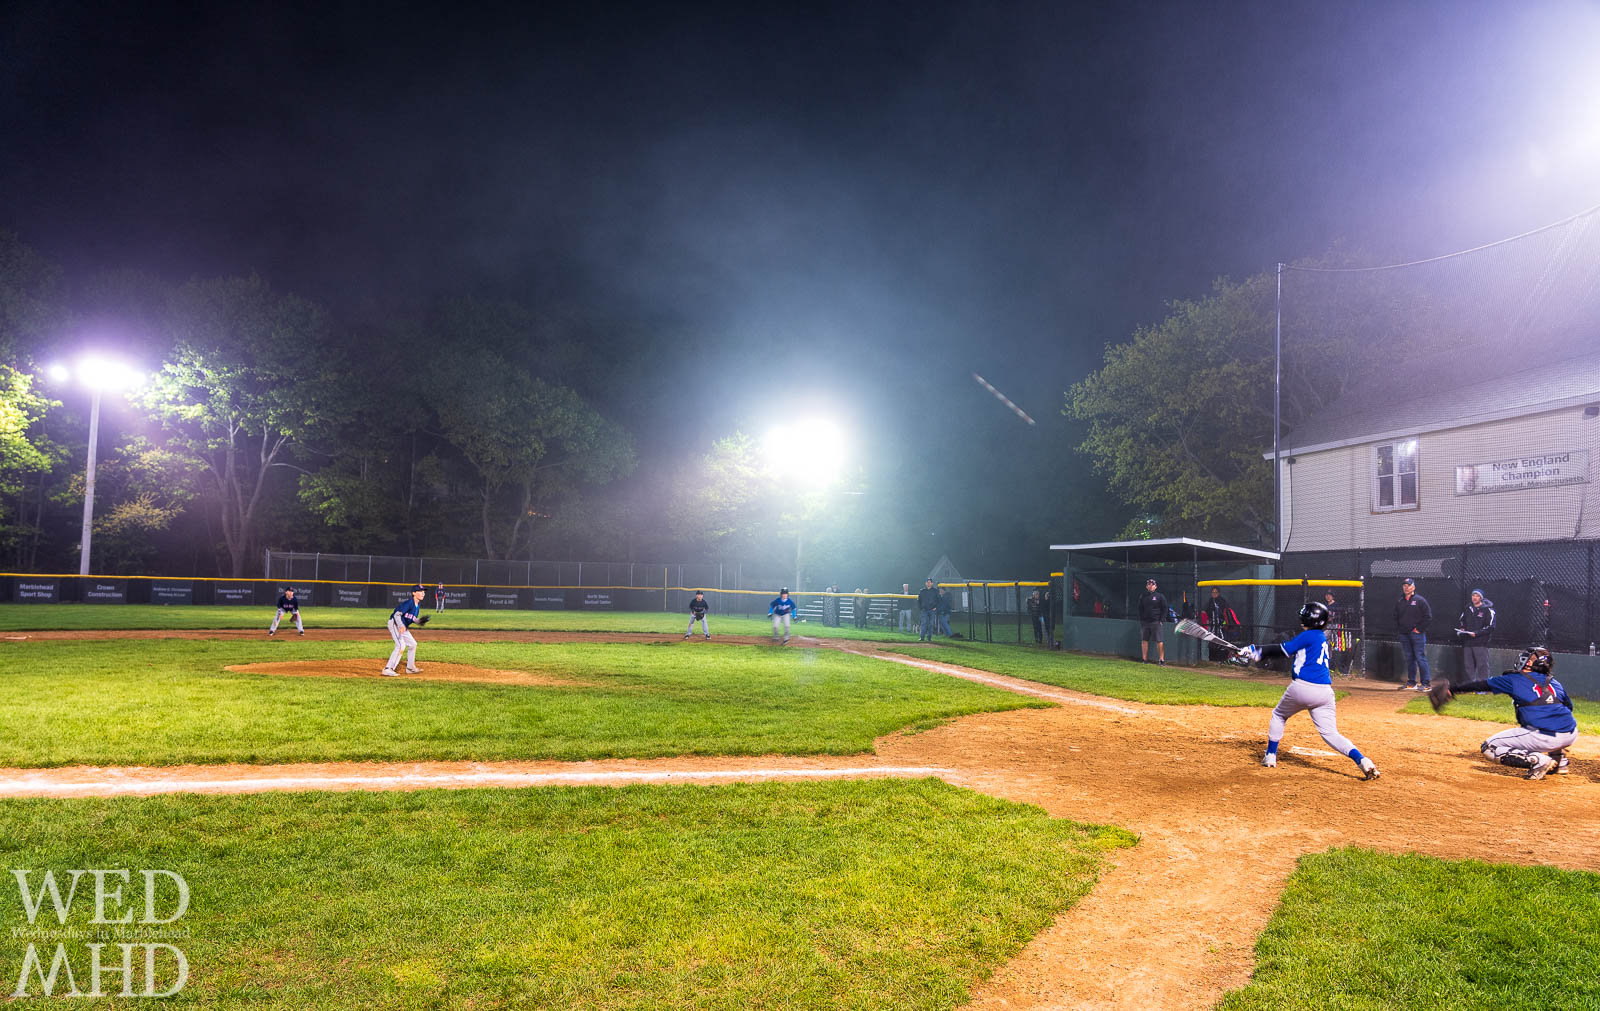 Kids playing baseball in the fog at Gatchells Field with a shot into centerfield scoring a run